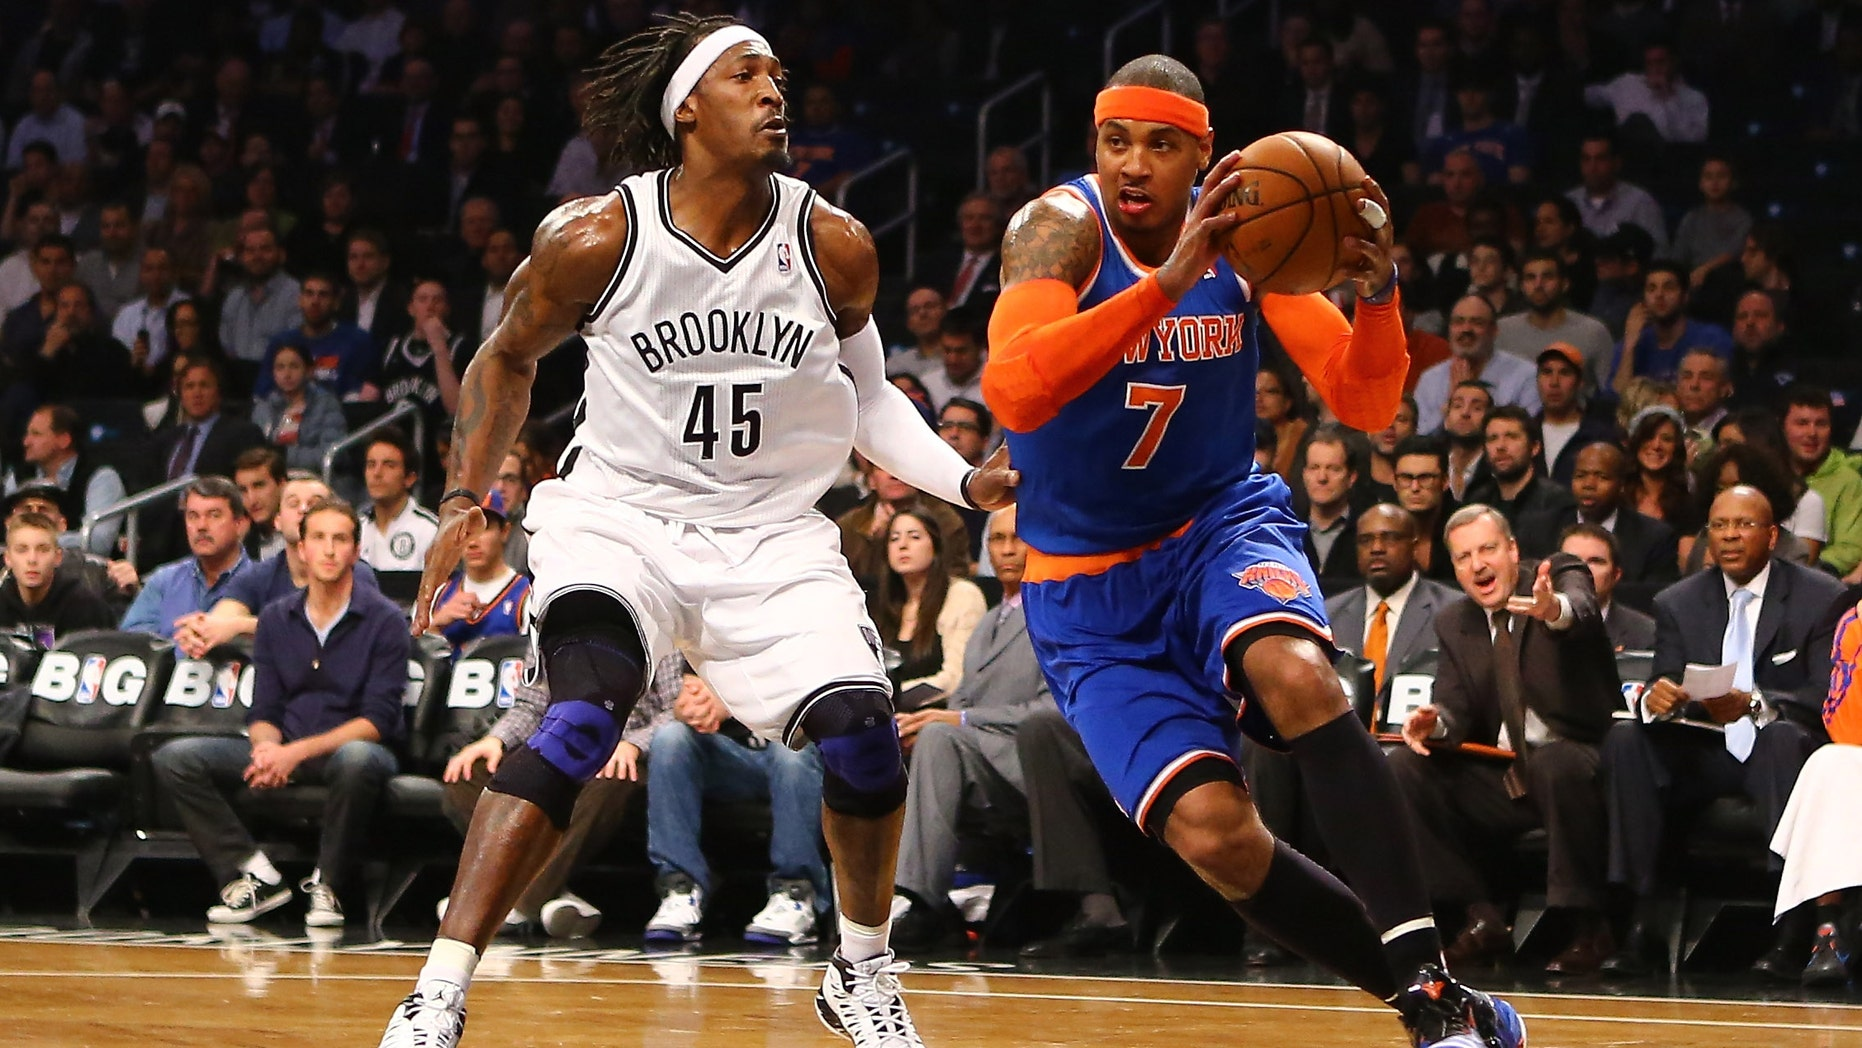 Carmelo Anthony #7 of the New York Knicks drives against Gerald Wallace #45 of the Brooklyn Nets  during their game at the Barclays Center on December 11, 2012 in the Brooklyn borough of New York City. (Photo by Al Bello/Getty Images)